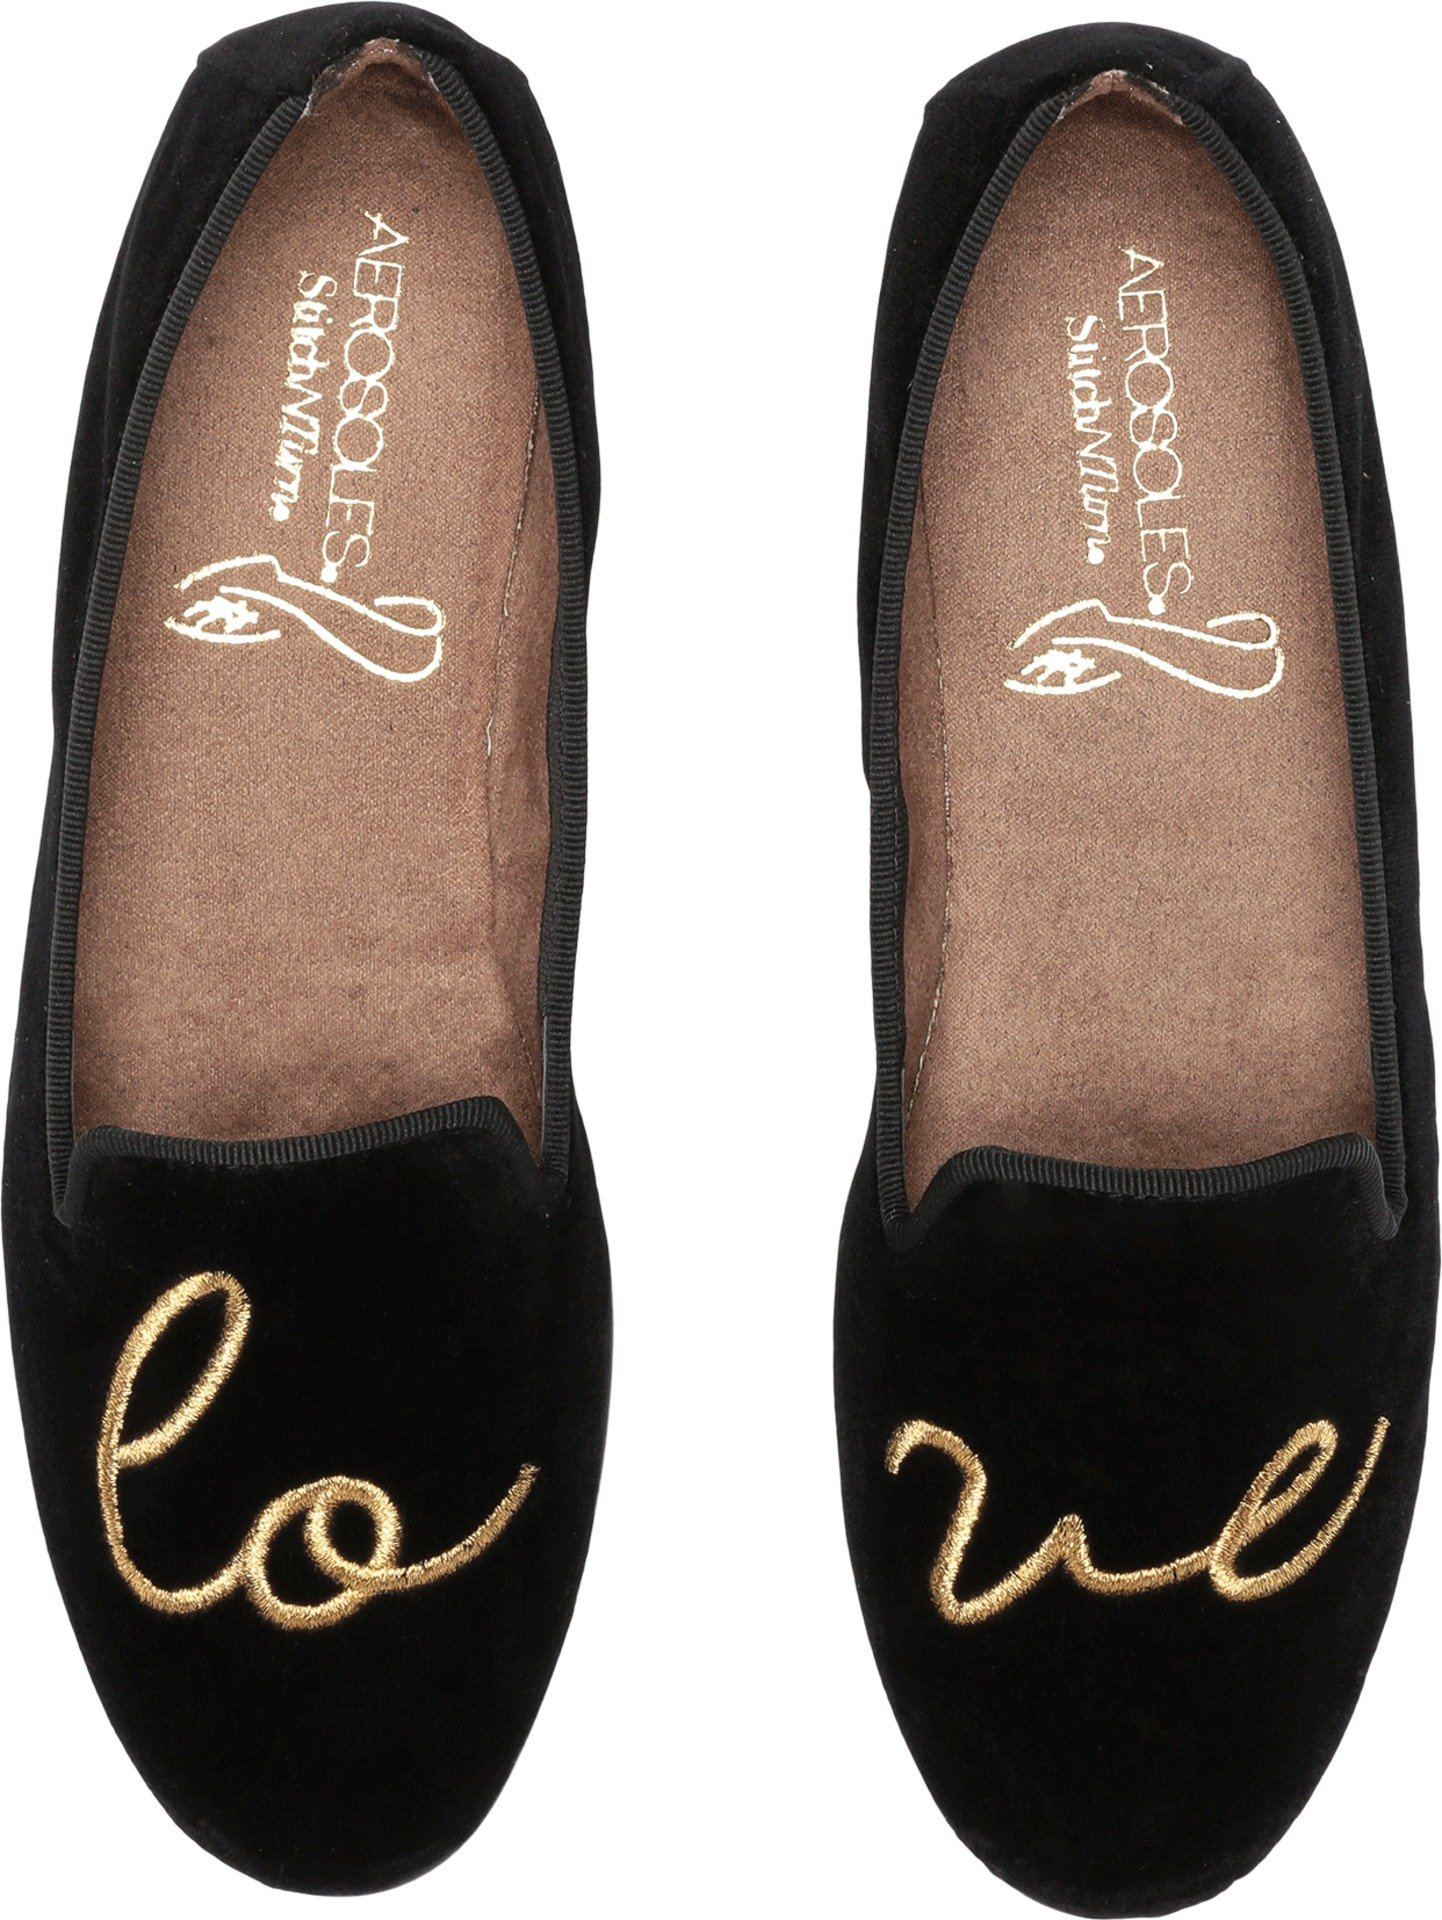 Aerosoles Women's Betunia Loafer, Black Velvet Love, 7 W US